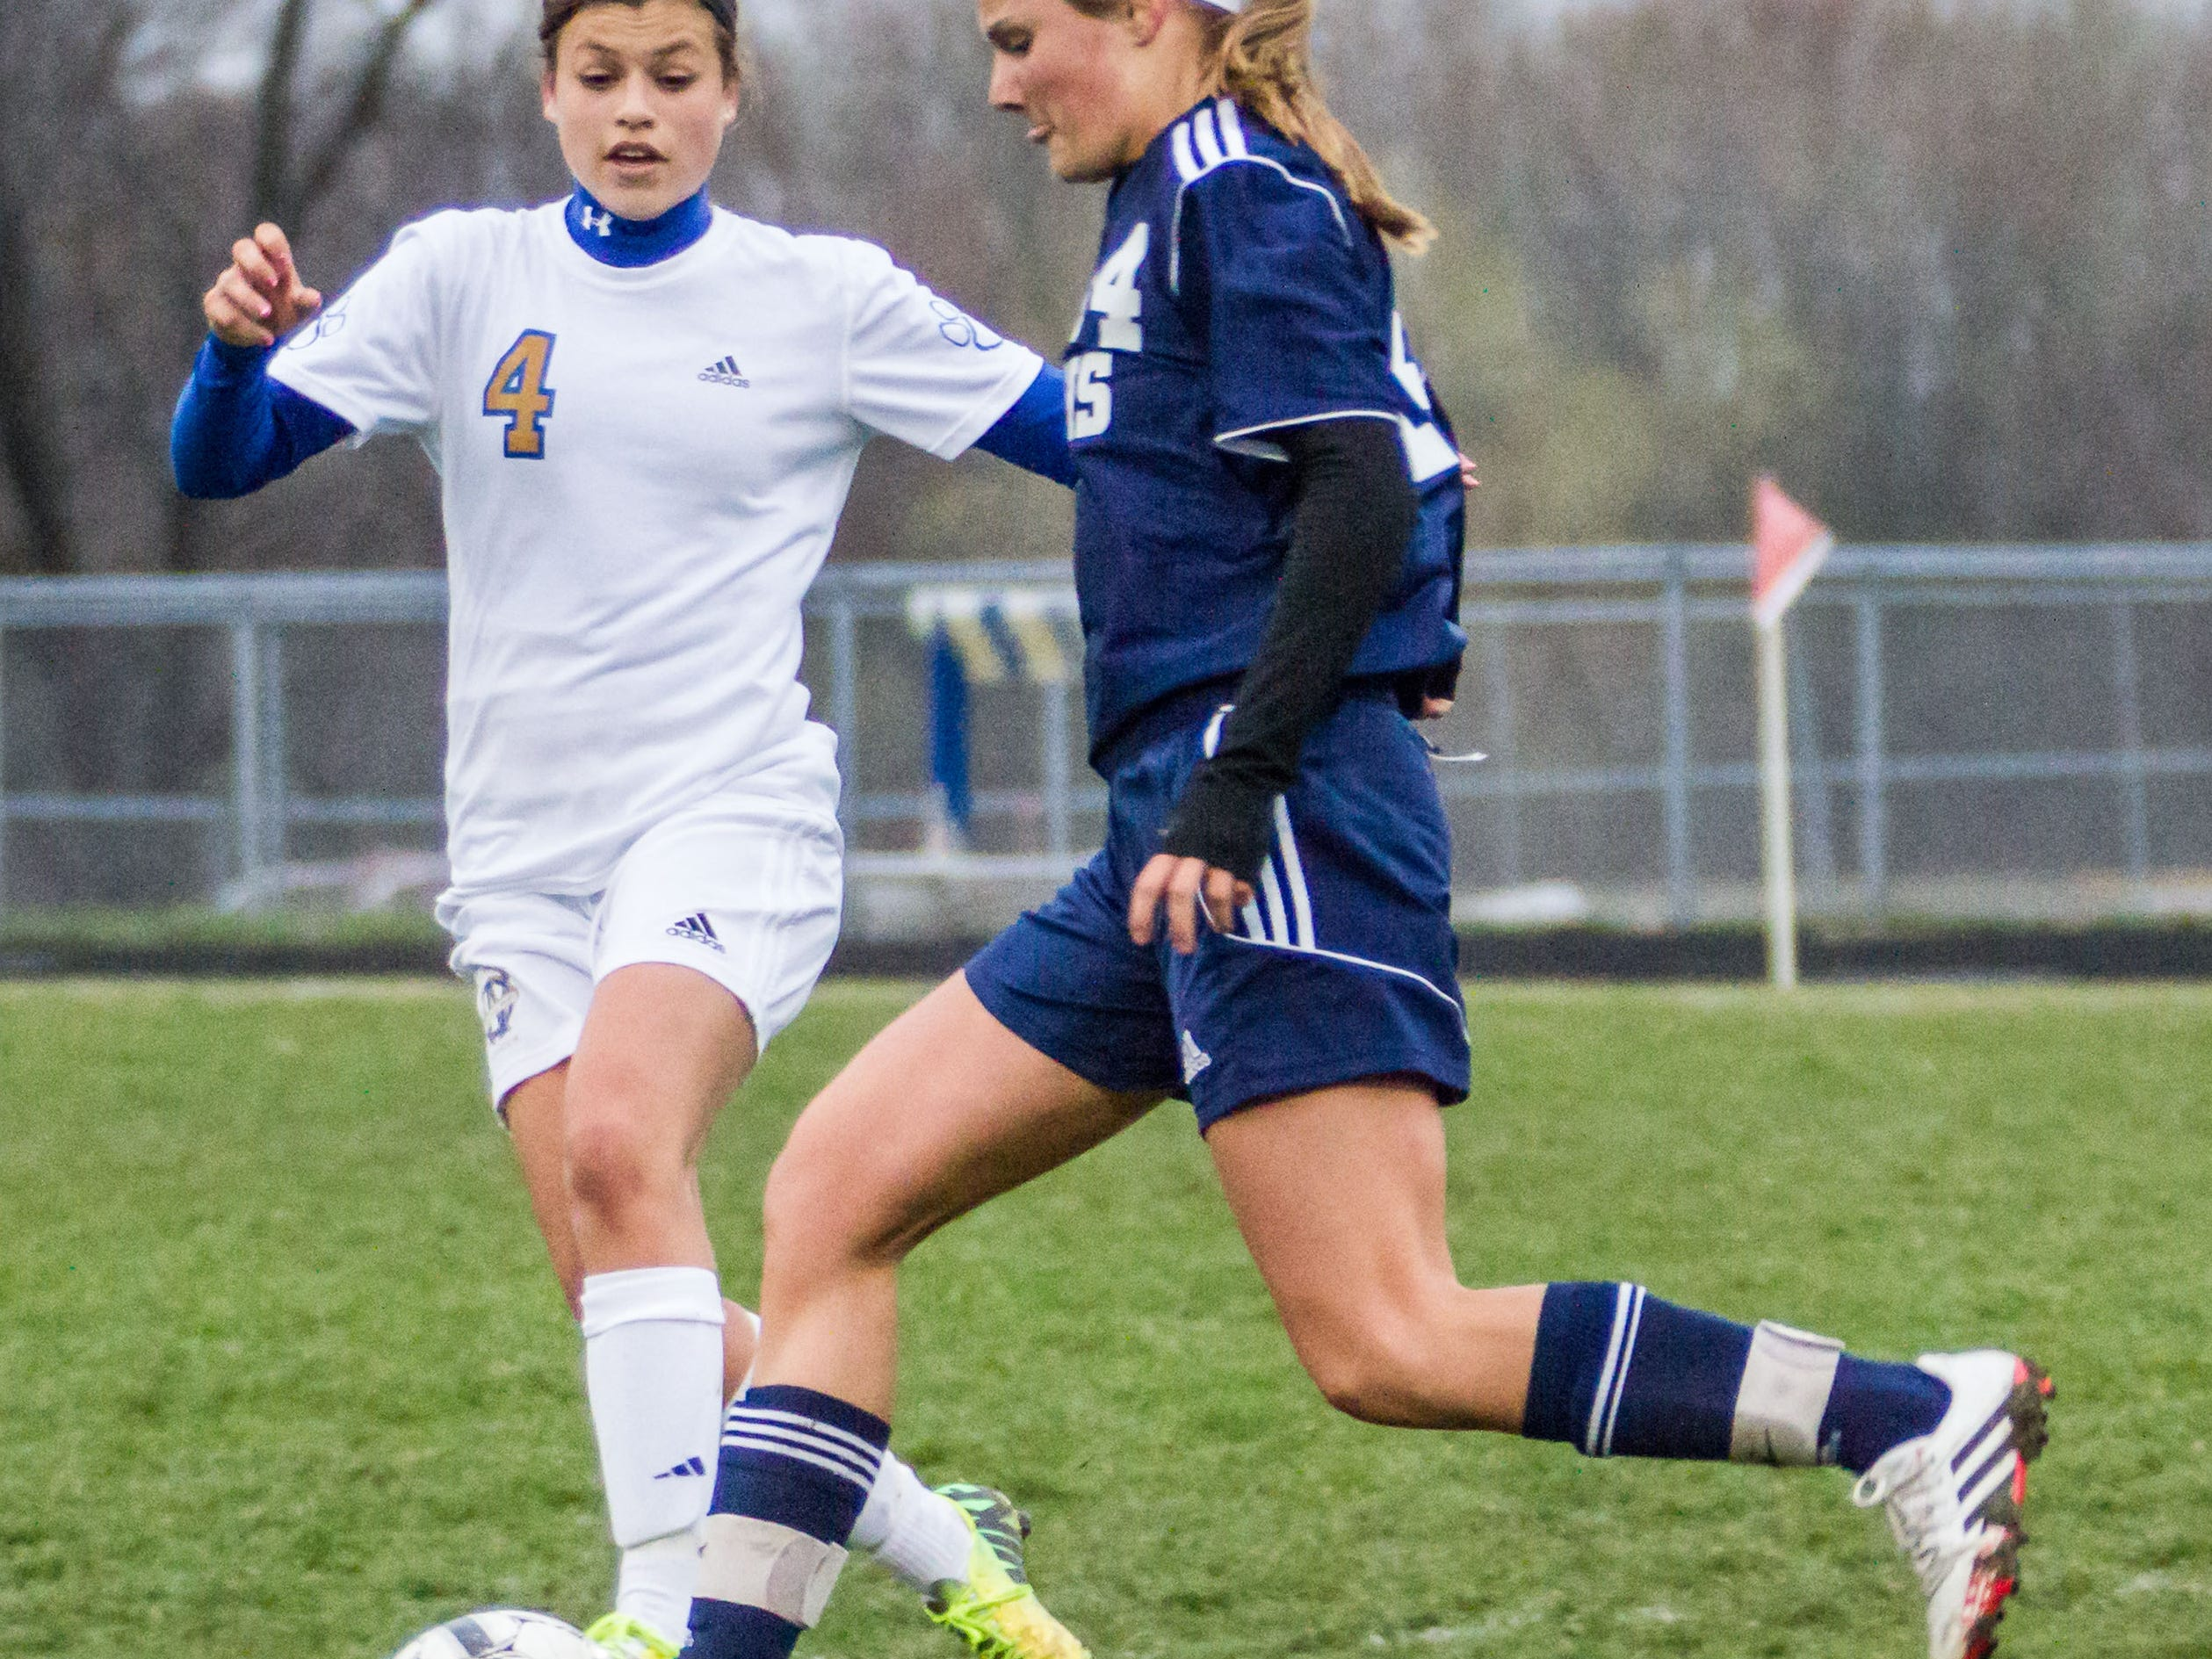 Waukesha West sophomore Dani Rhodes (4) and Kettle Moraine's Lauren Hotchkiss (14) battle for possession at West on Wednesday, April 30, 2014.